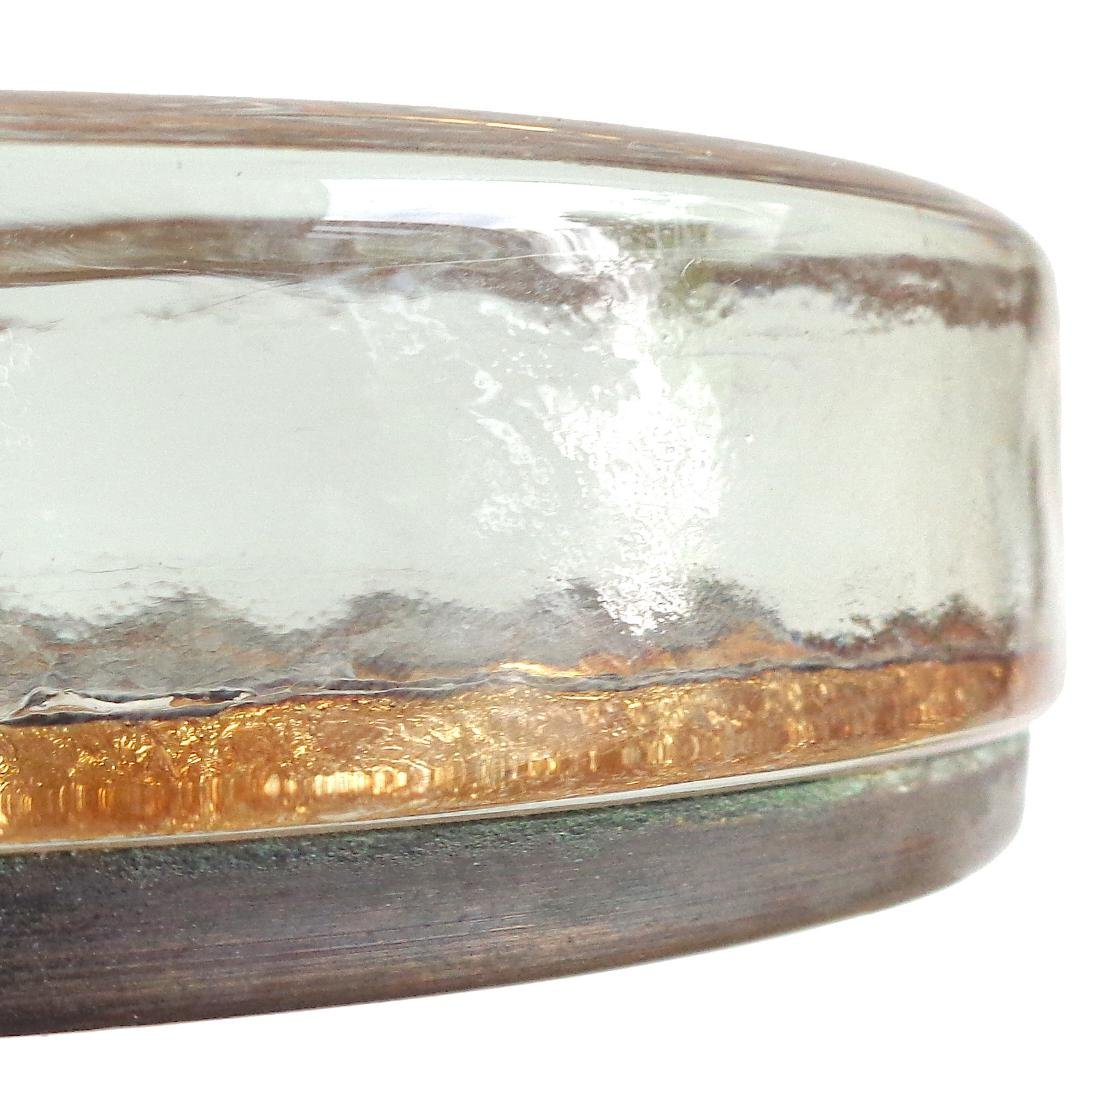 Venetian Gold Leaf Apollo 11 Glass Paperweight - 2